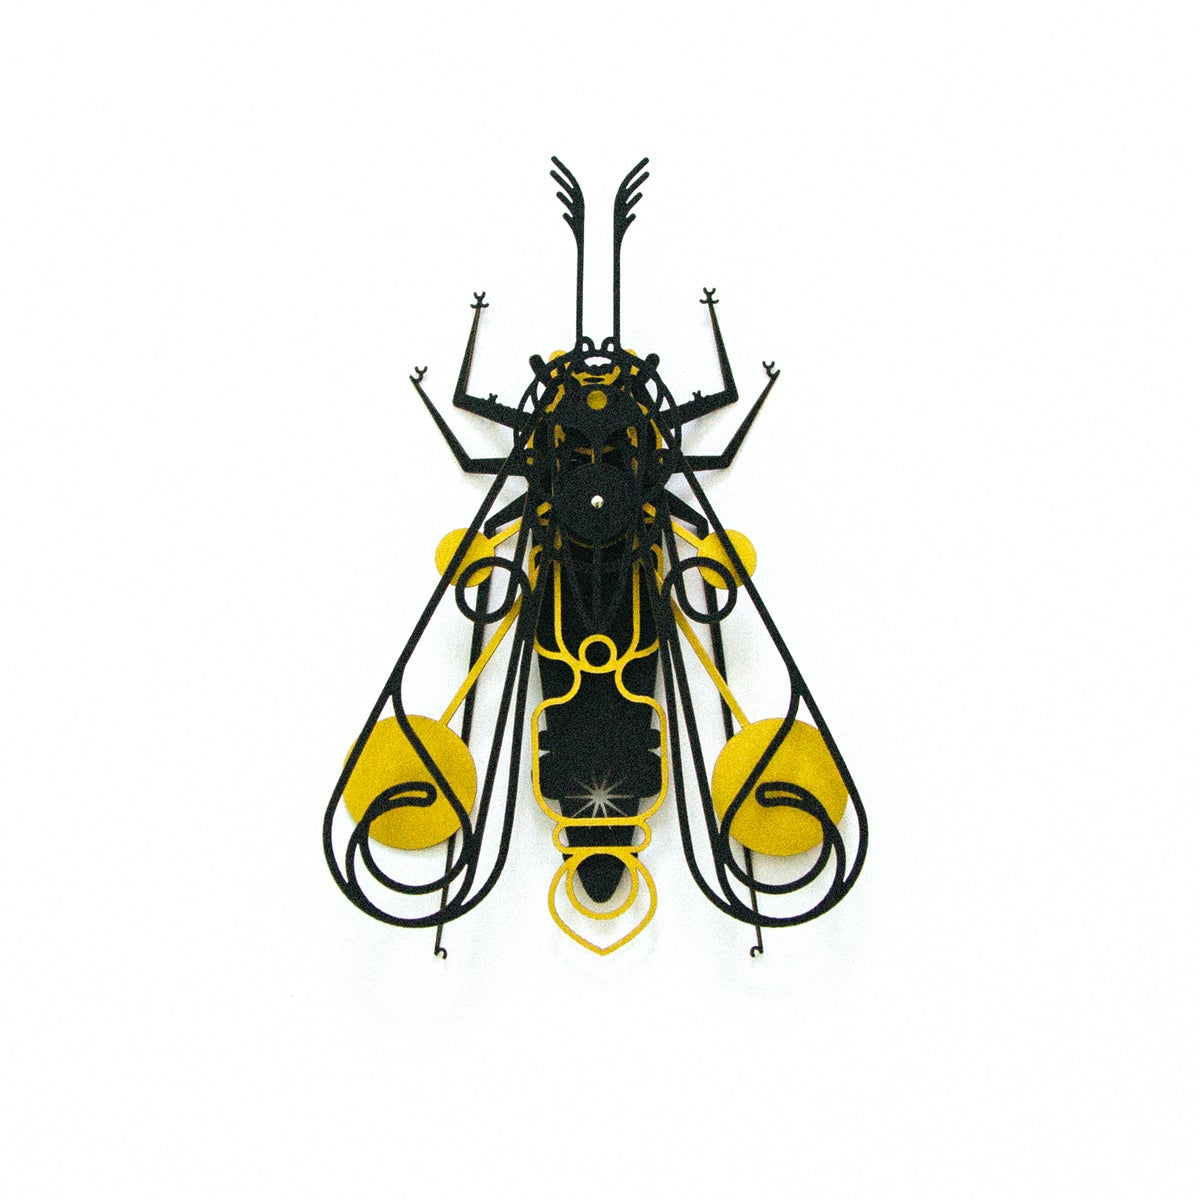 Image of INSECT - Moth_001